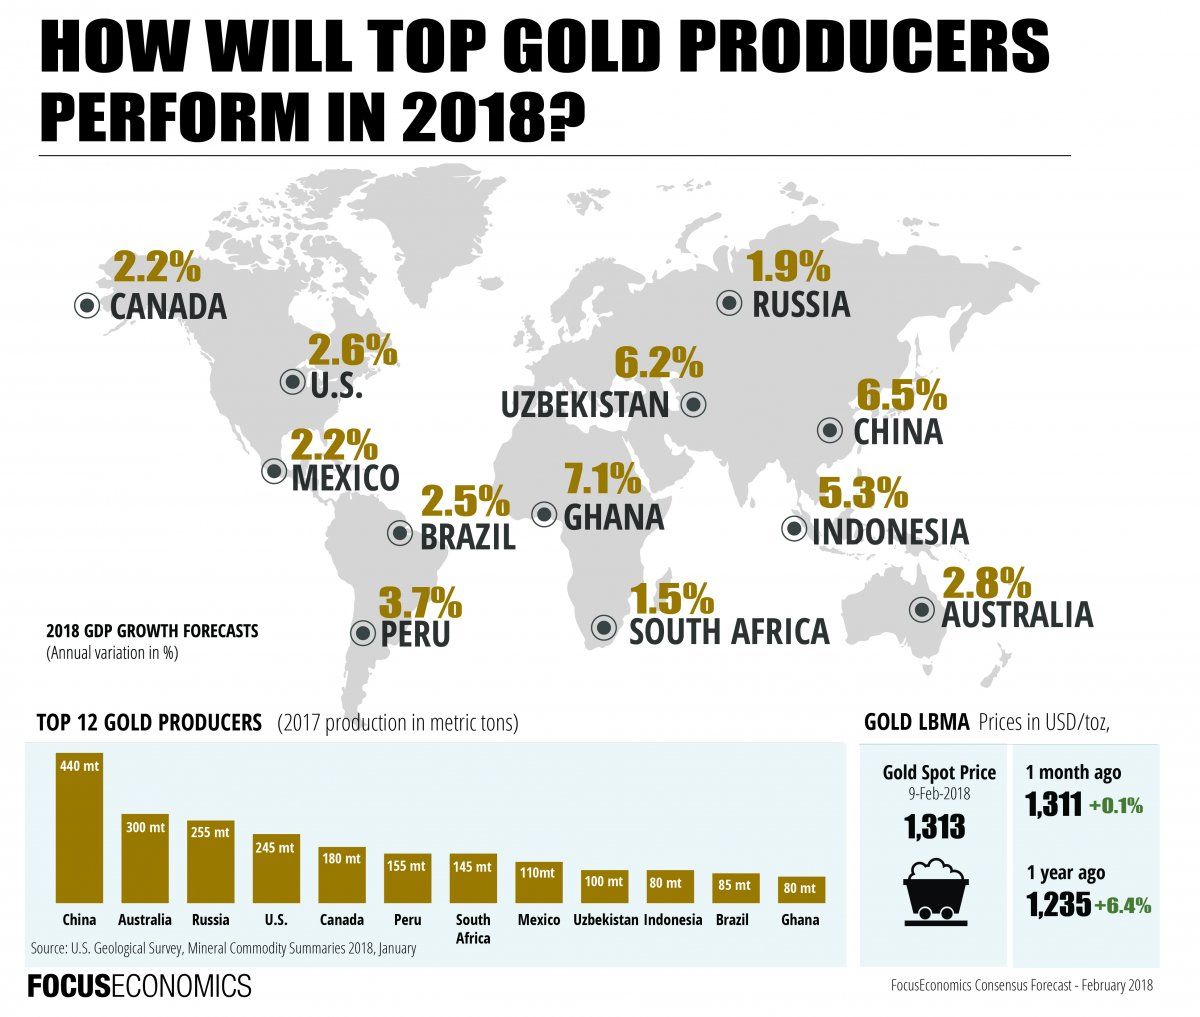 focuseconomics_top_gold_producers_february_2018-01.jpg